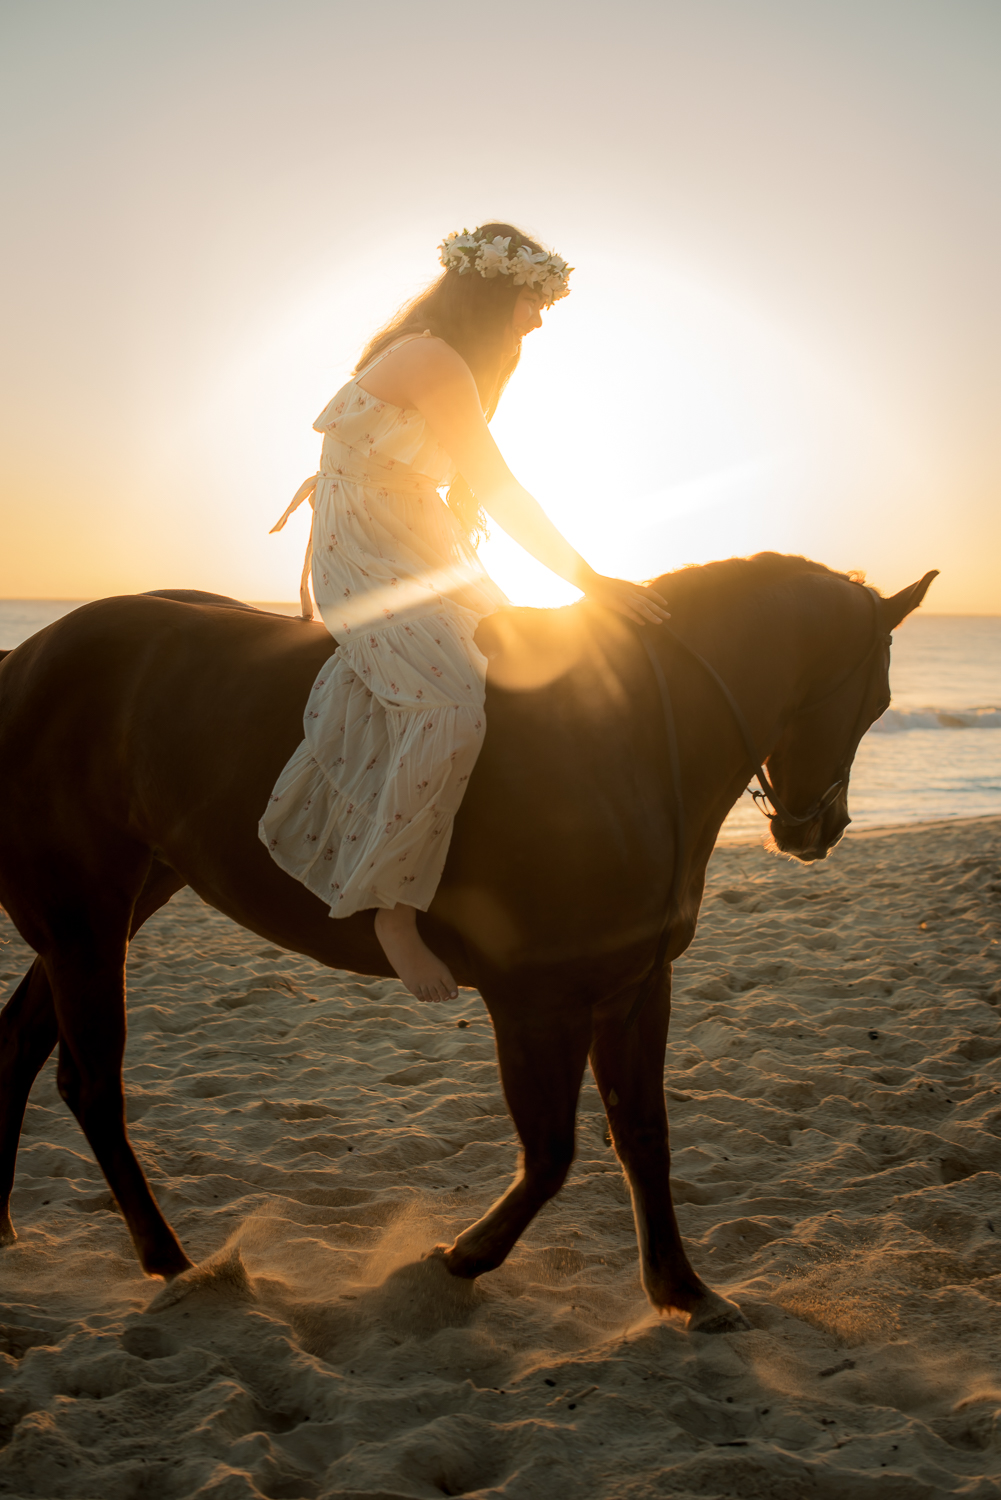 Sunrise with girl on horse at beach